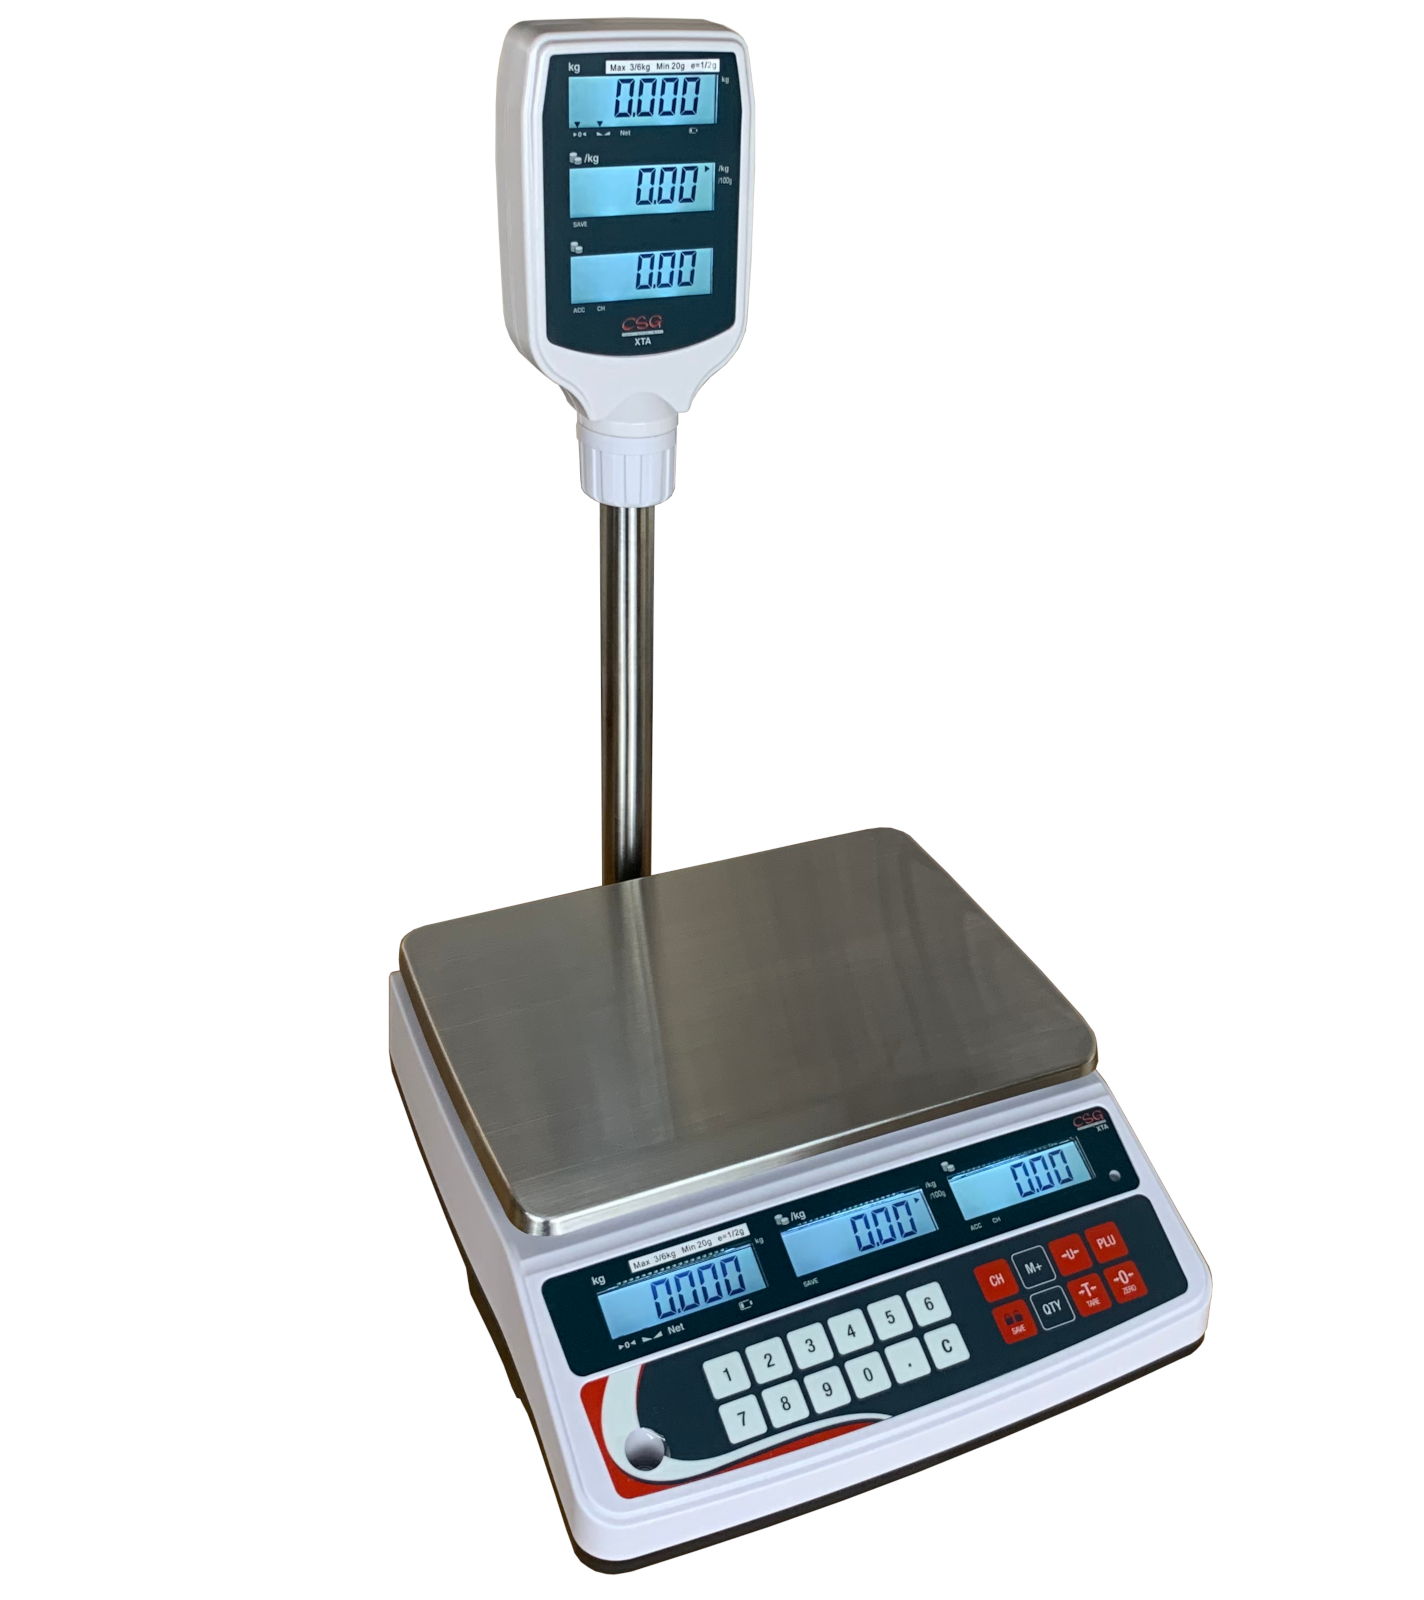 CSG XTA-P PRICE COMPUTING RETAIL SCALE